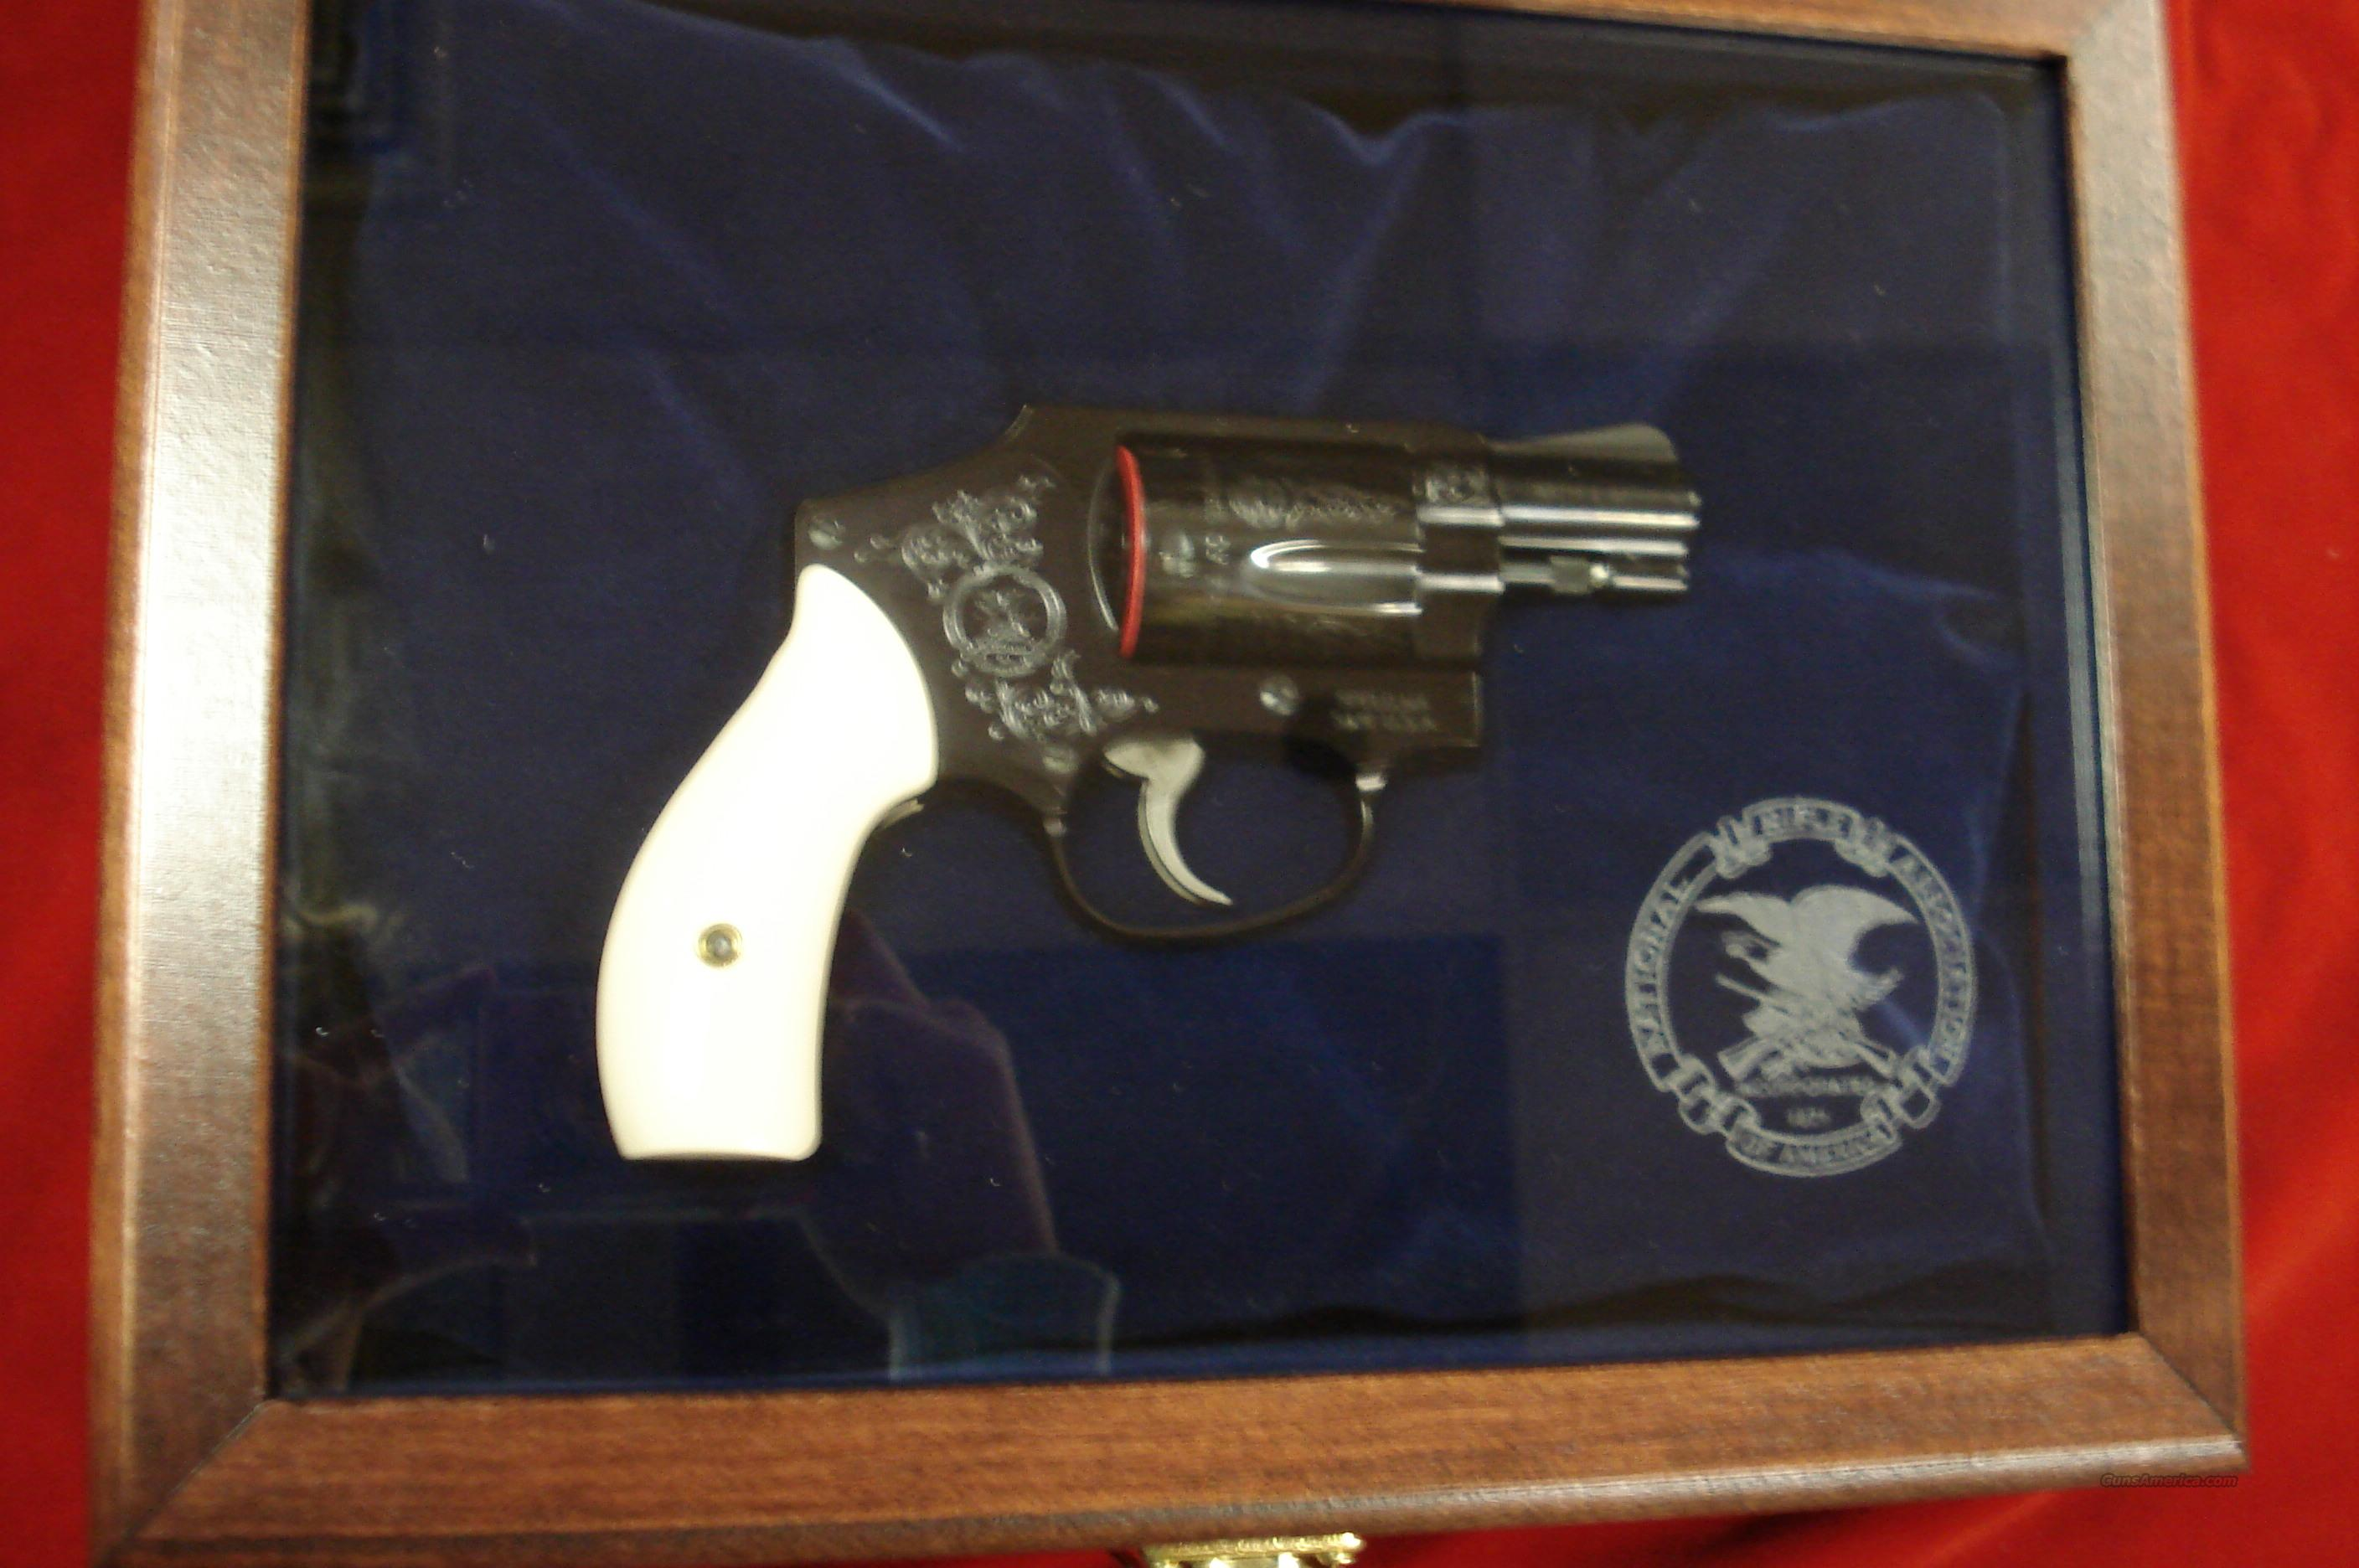 SMITH AND WESSON M442  CLASSIC 38SPL.  NRA W/DISPLAY CASE NEW   Guns > Pistols > Smith & Wesson Revolvers > Pocket Pistols